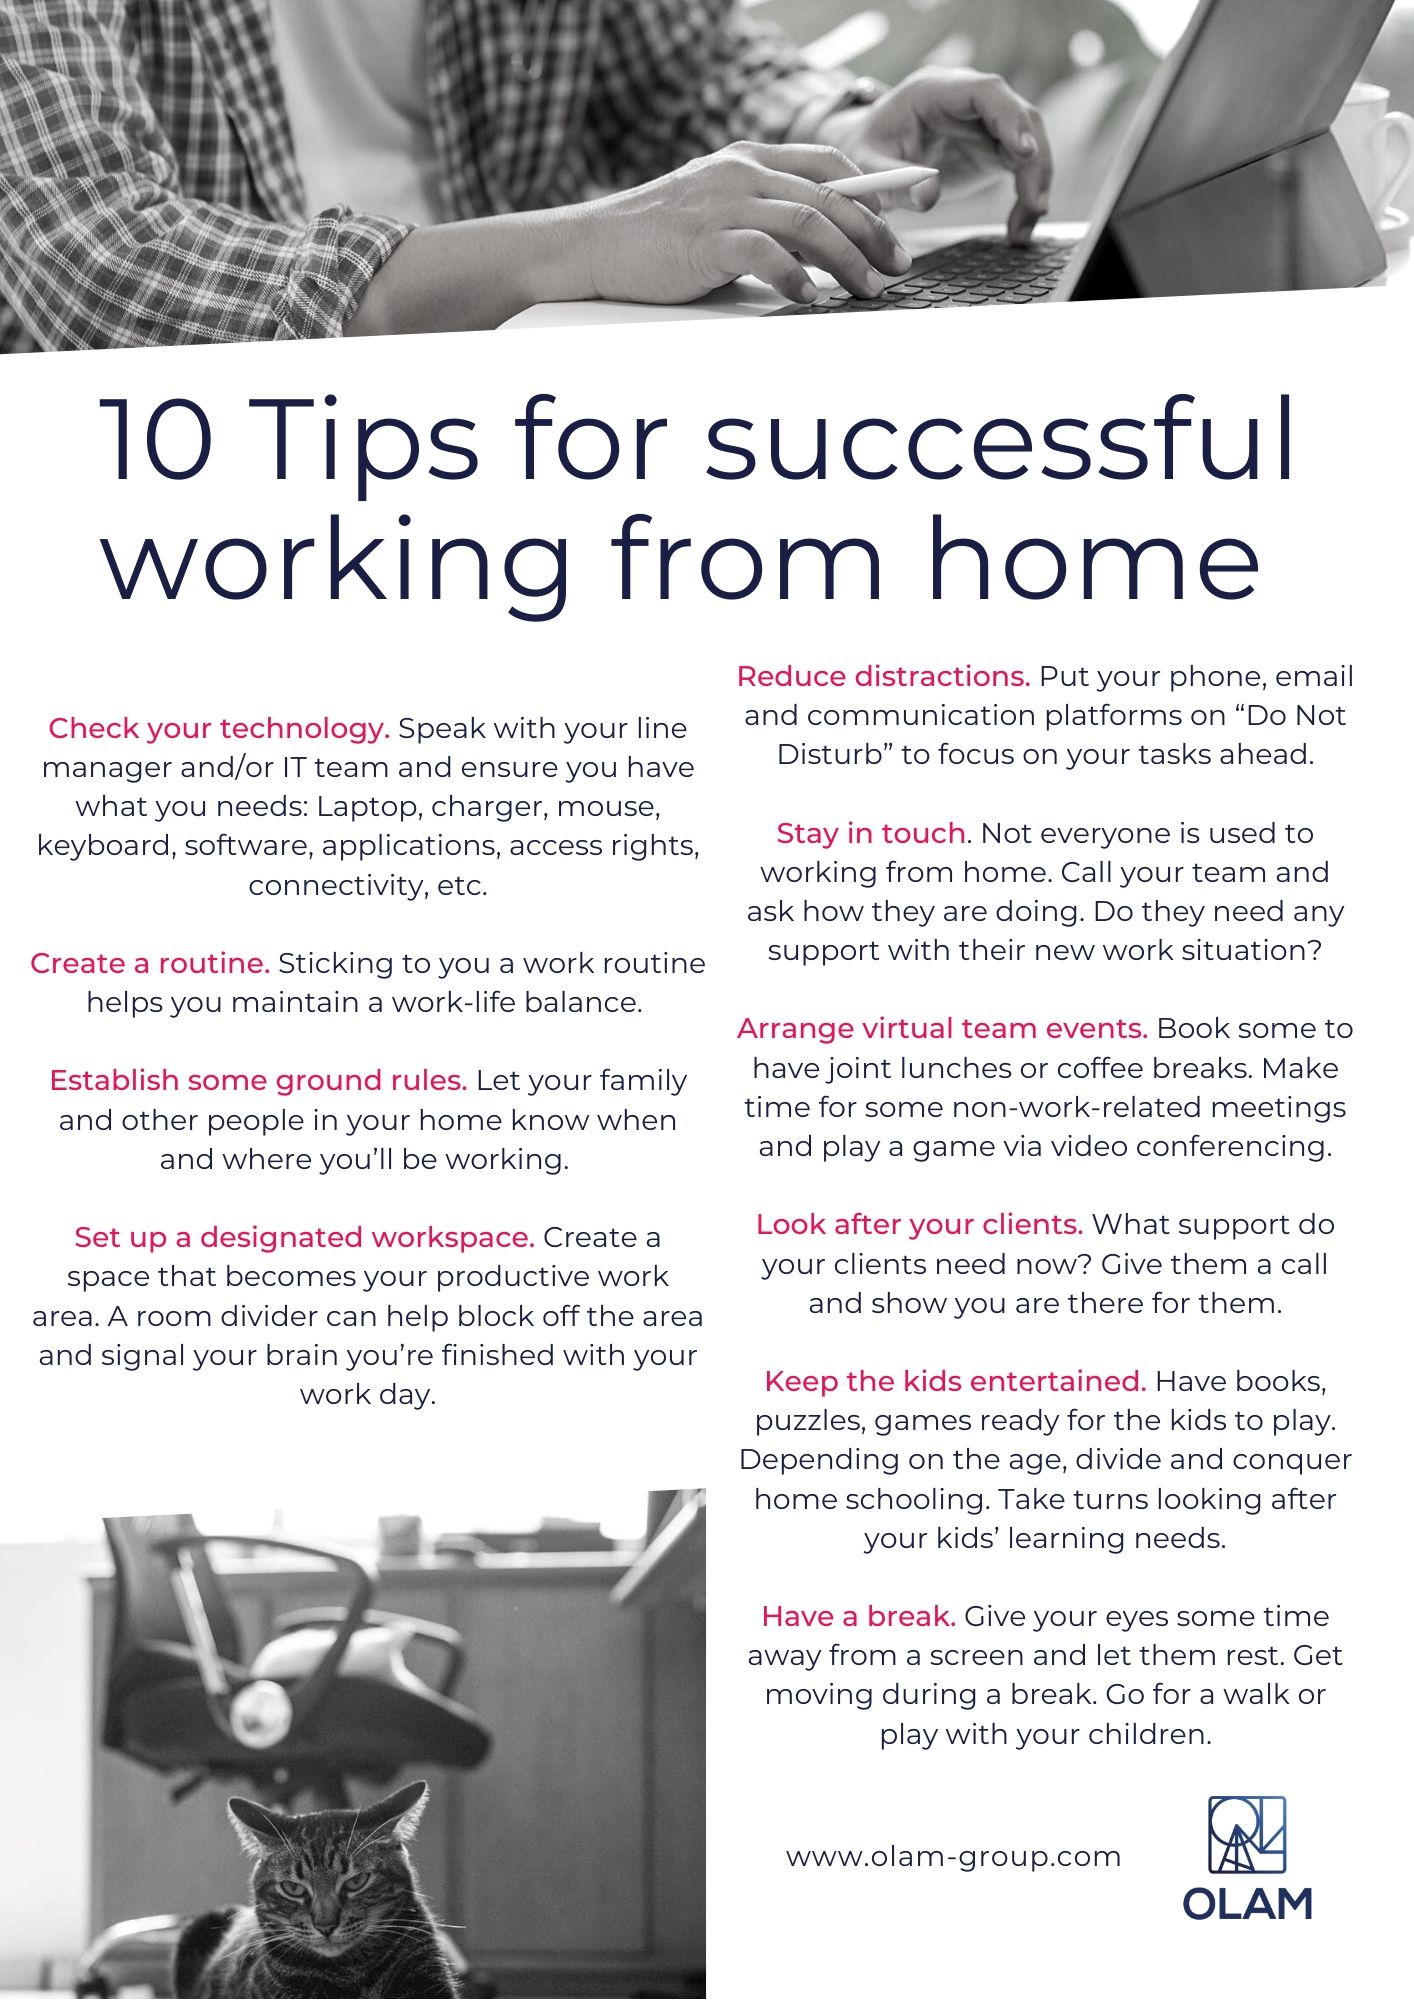 10 Tips for successful working from home